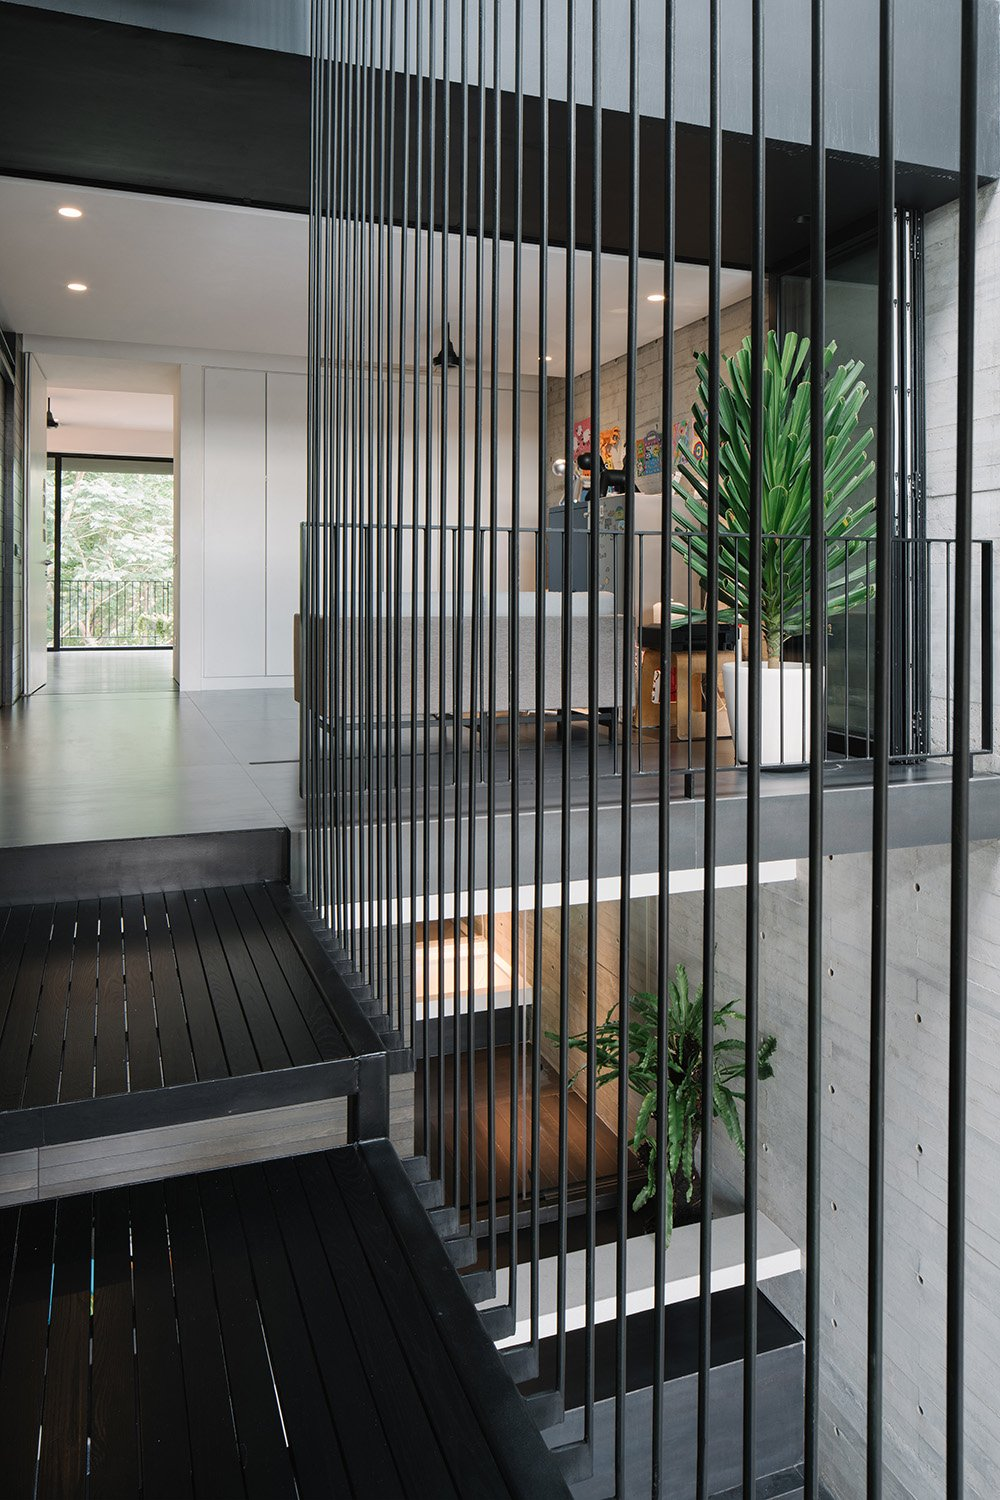 Room surround the central atrium which houses the pool on the second story. Marc Tan